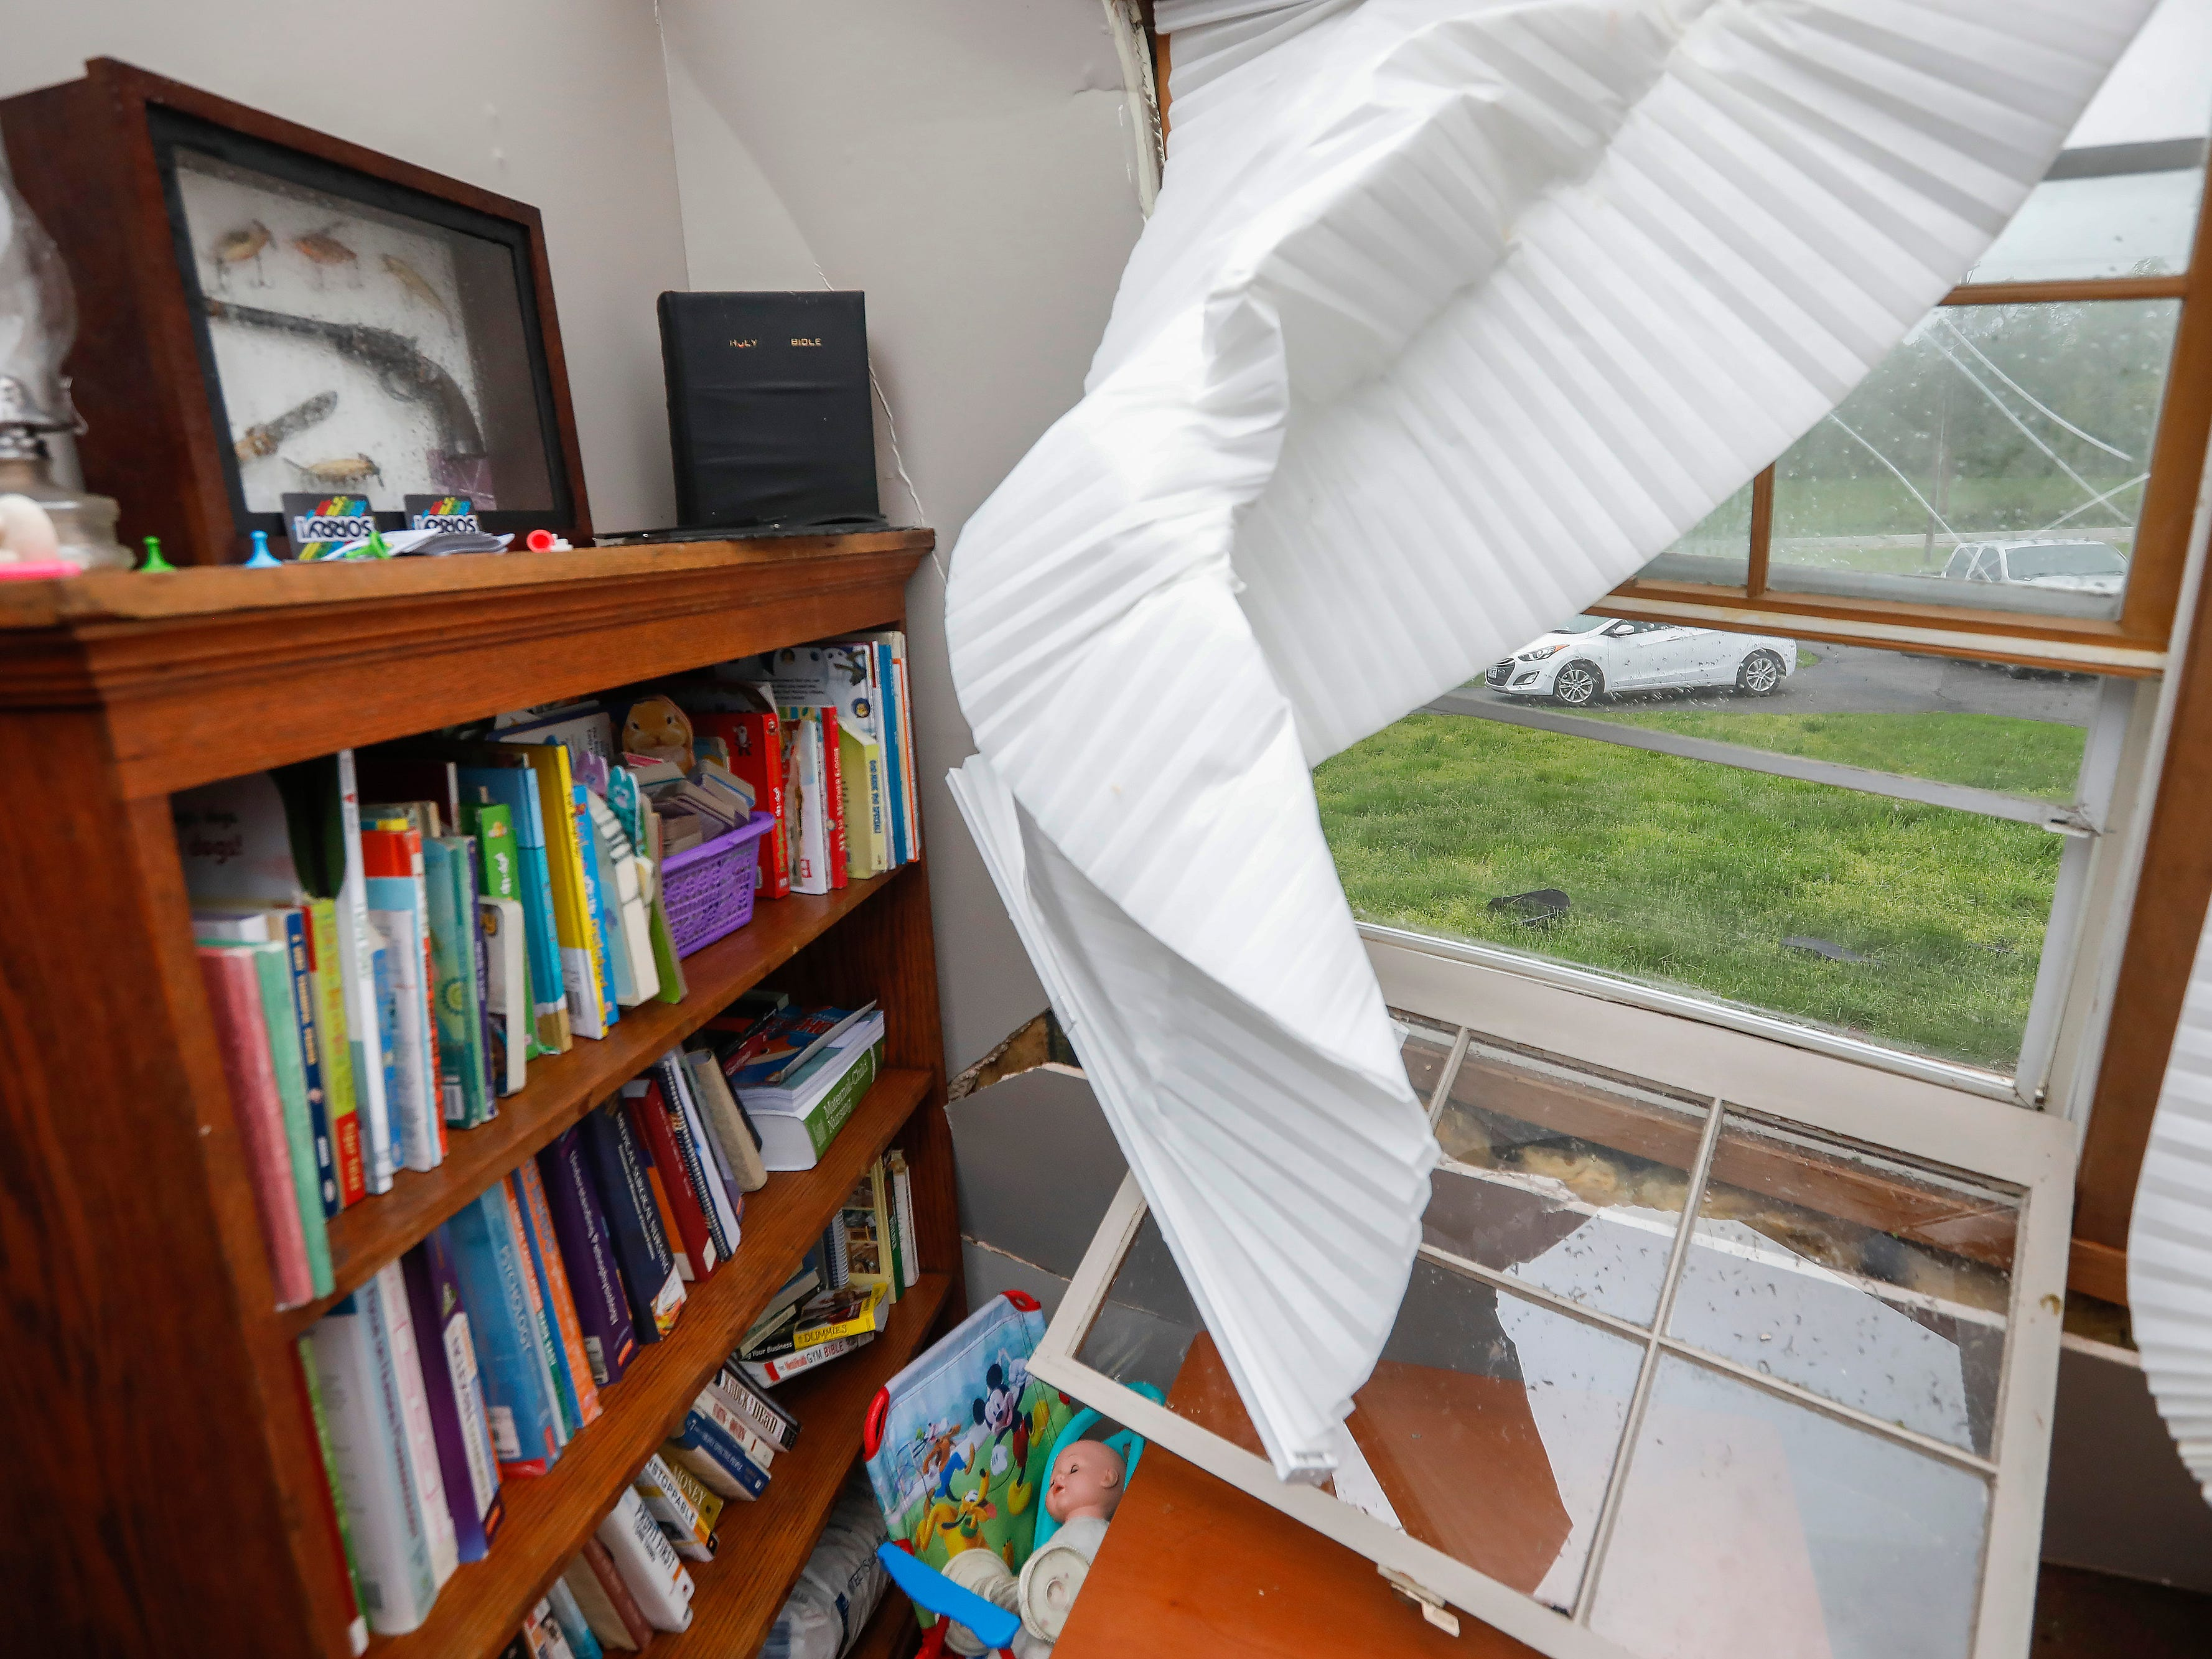 A Bible on top of a bookcase in Denton Wilson's home was untouched by a likely tornado that hit Ozark on Tuesday, April 30, 2019.